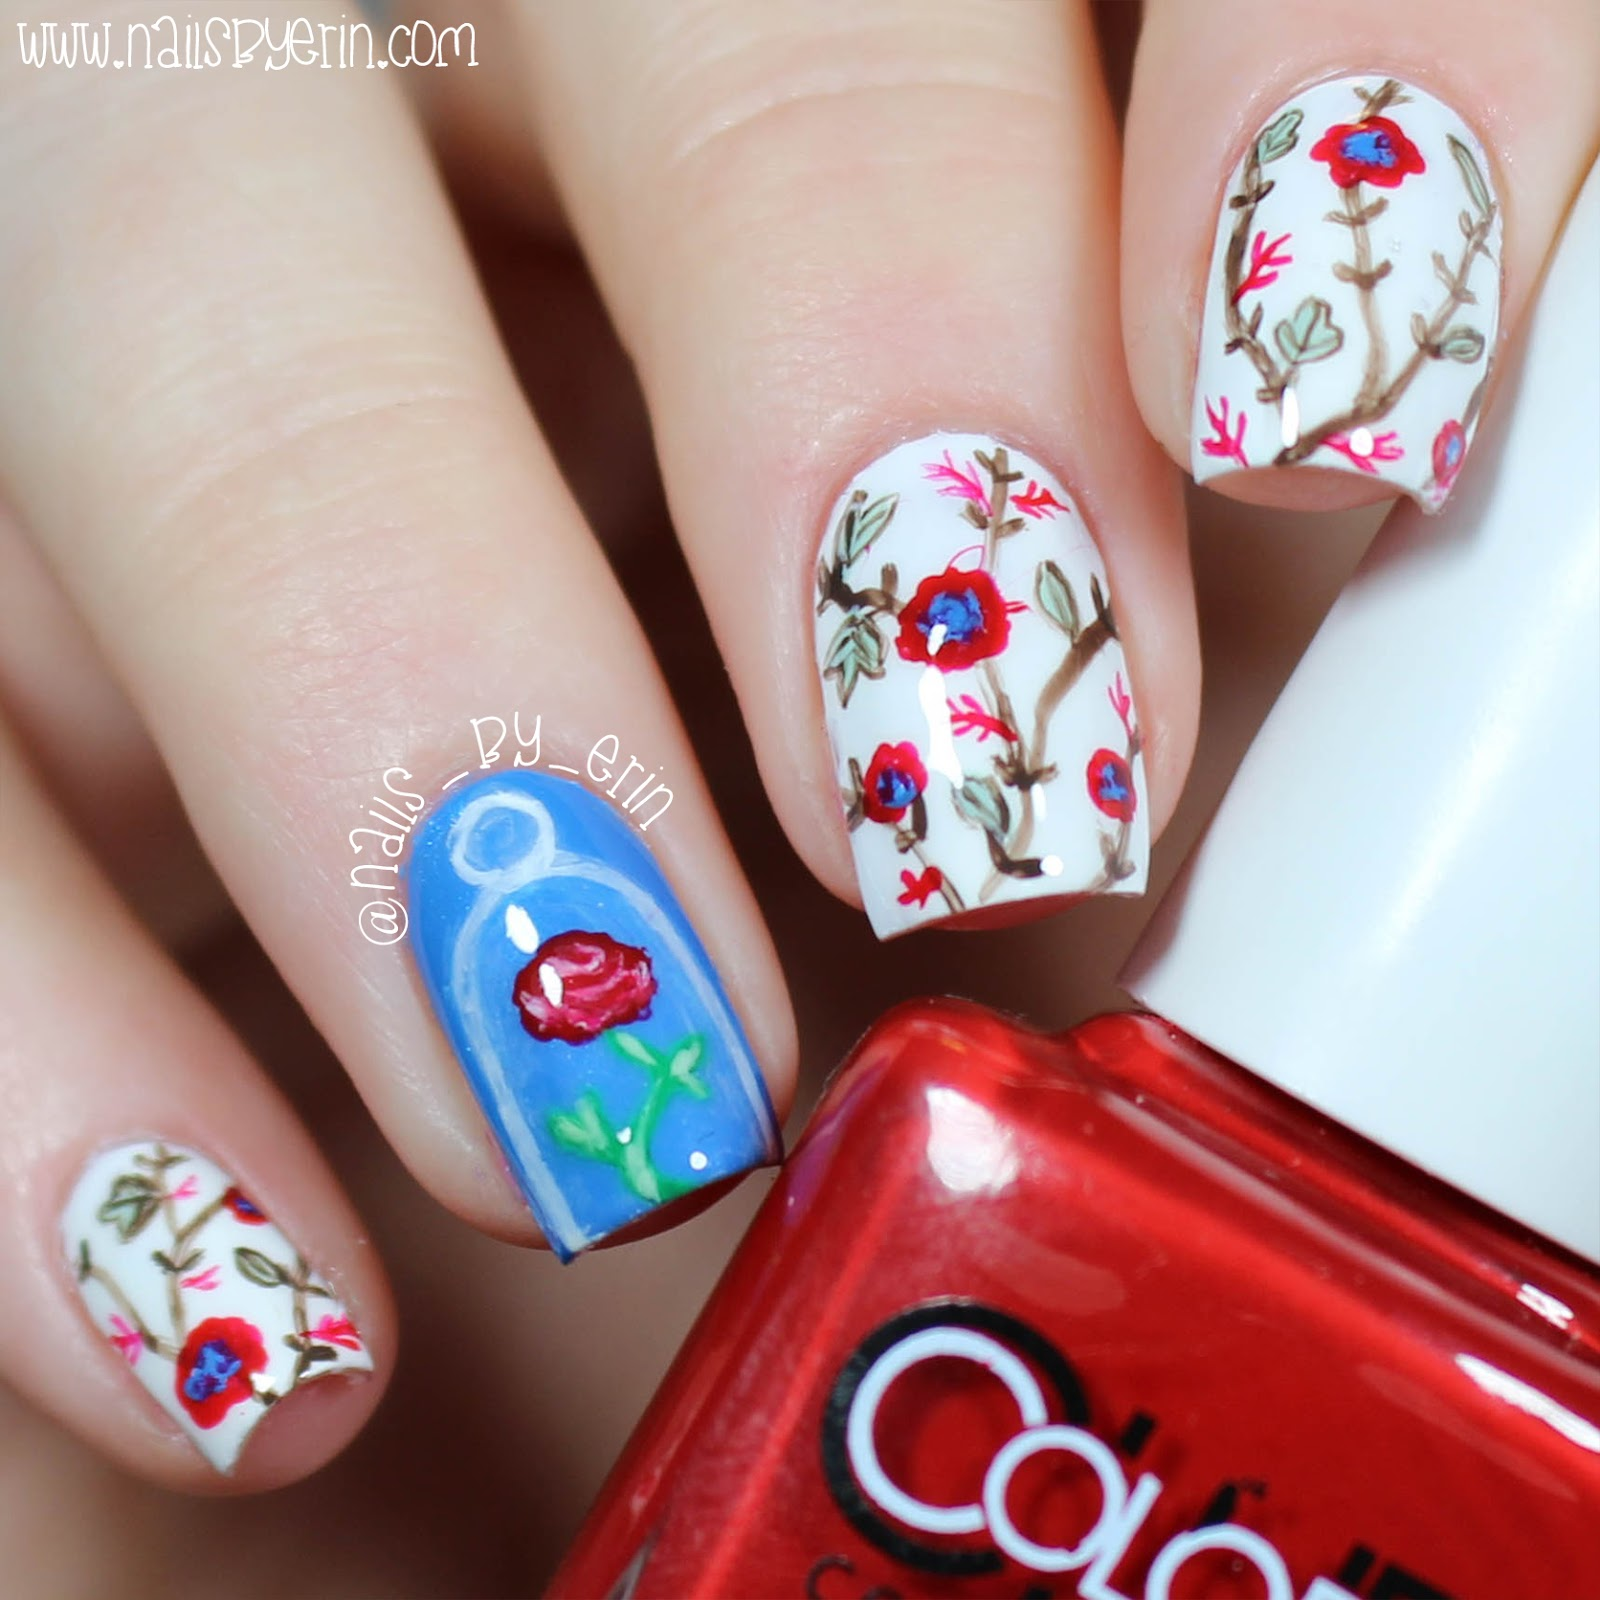 The Nail Art And Beauty Diaries: NailsByErin: Beauty And The Beast (2017) Nails